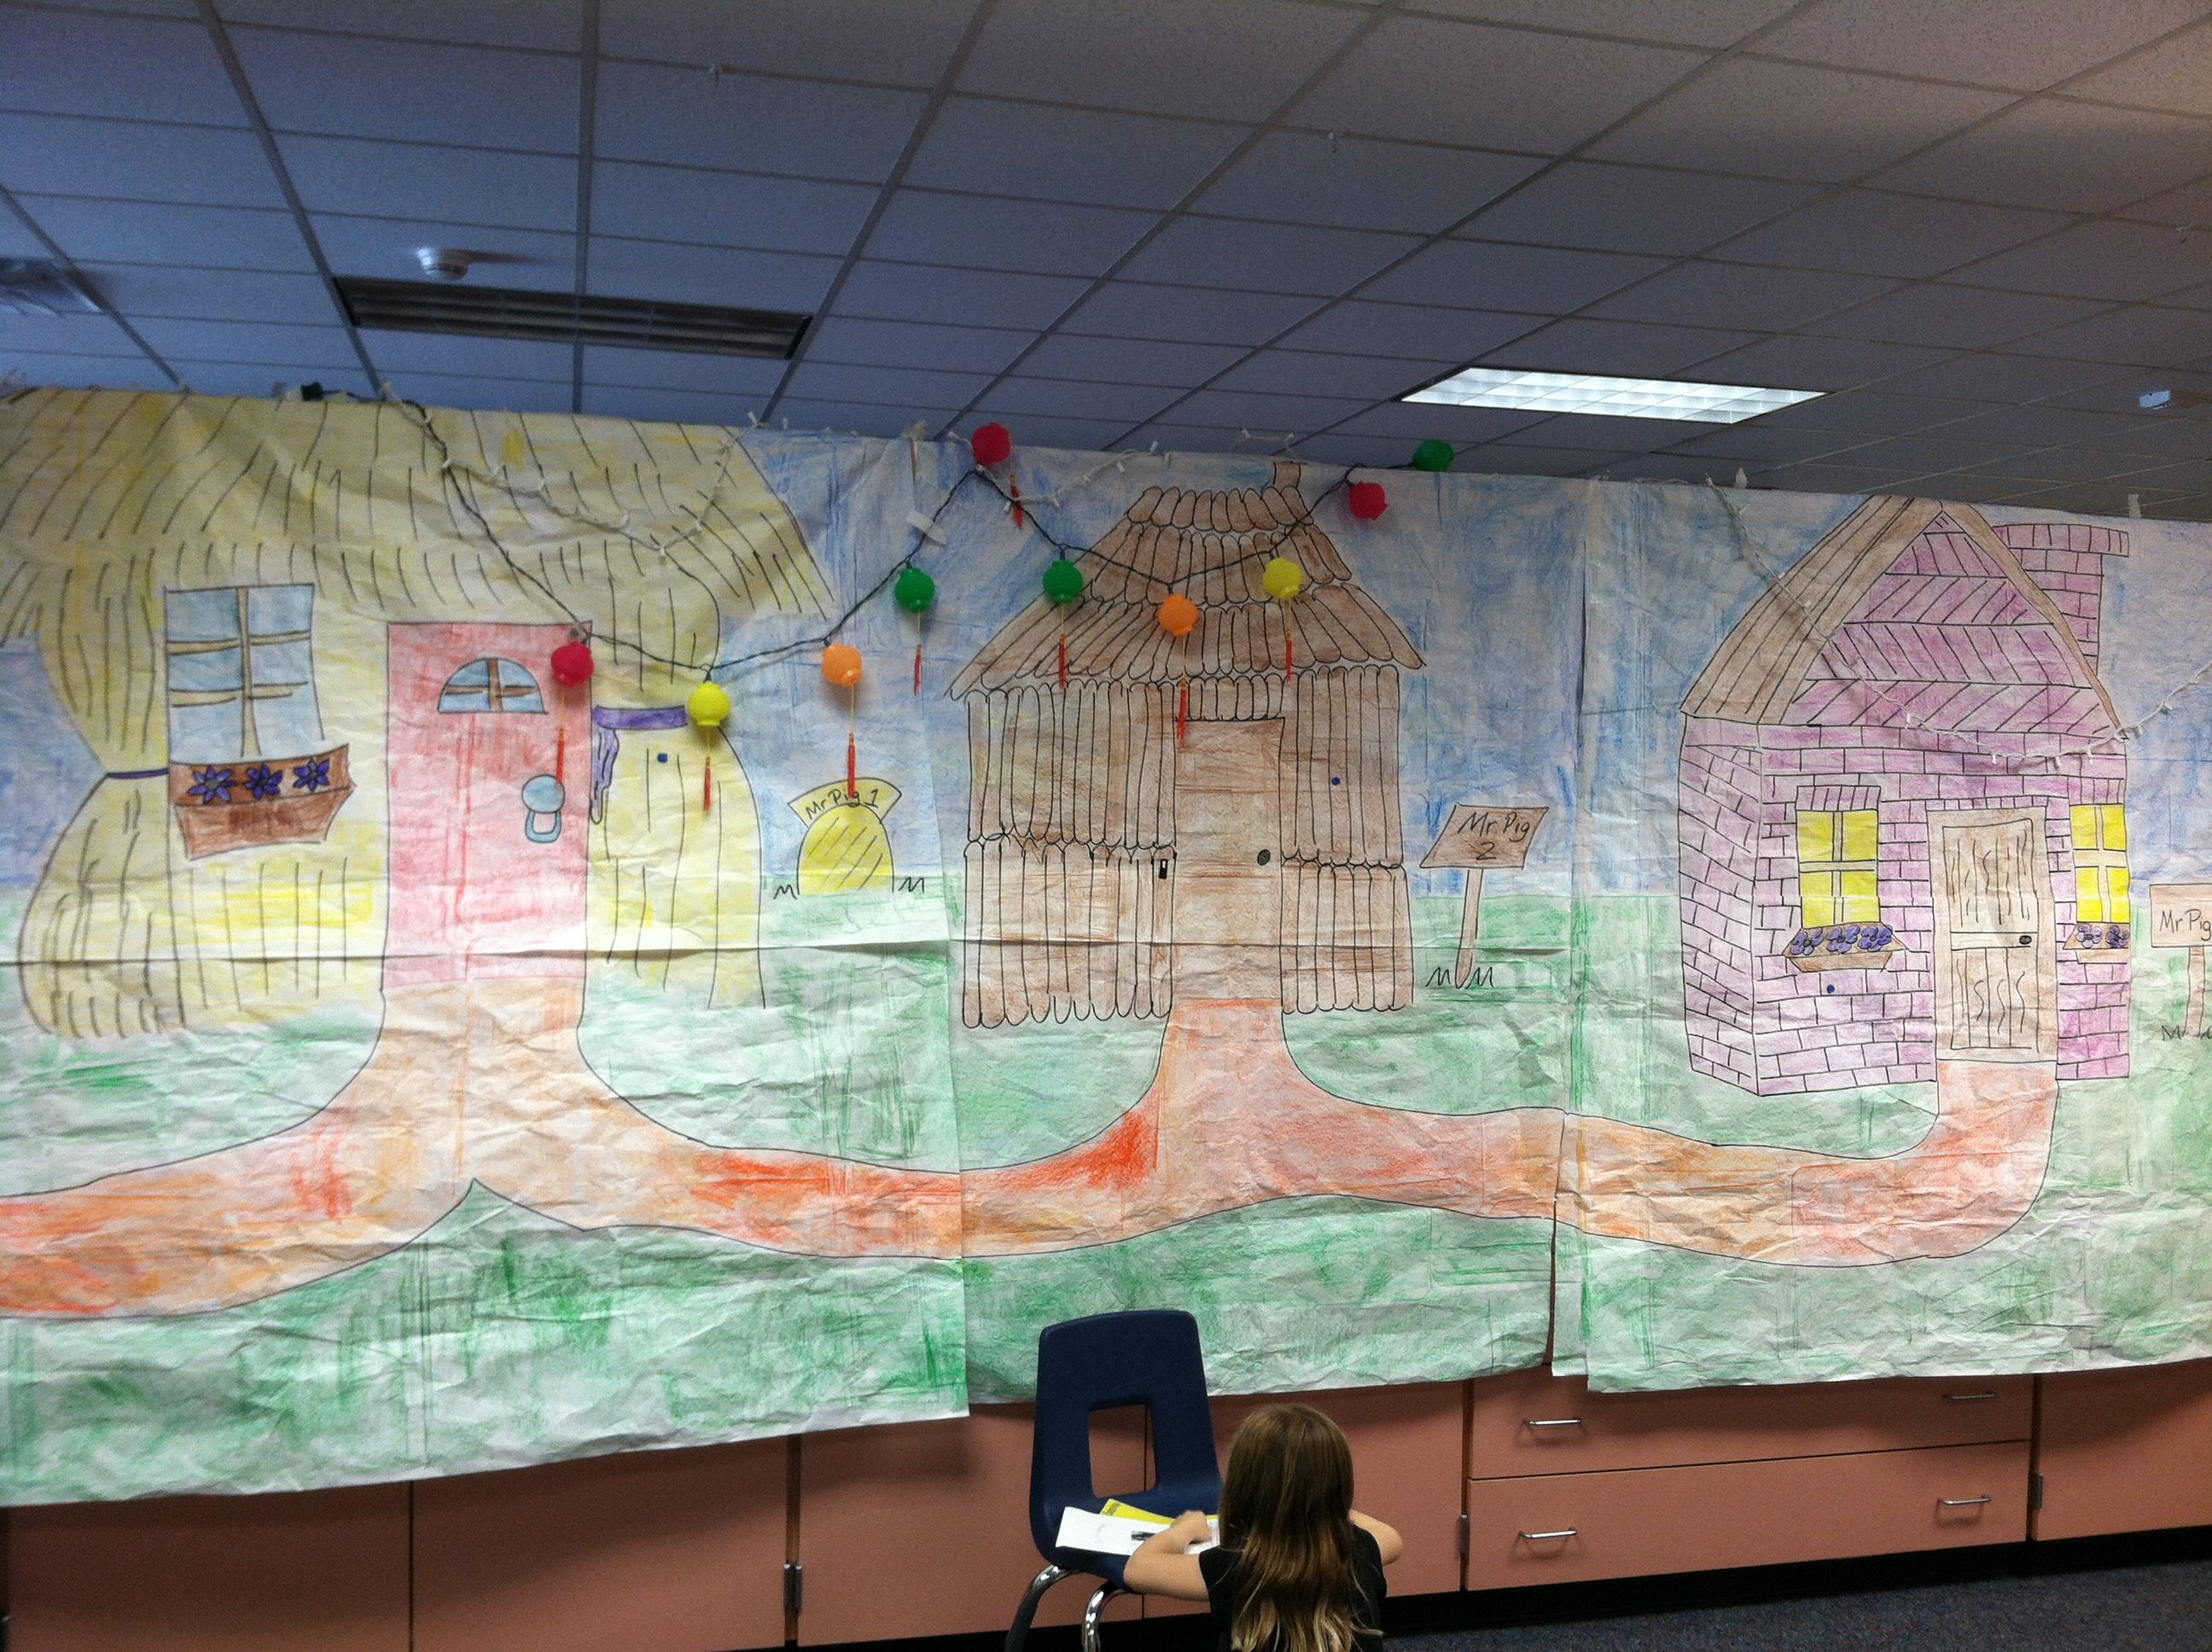 Three Little Pigs class play. Draw houses and have students to color on bulletin board paper.